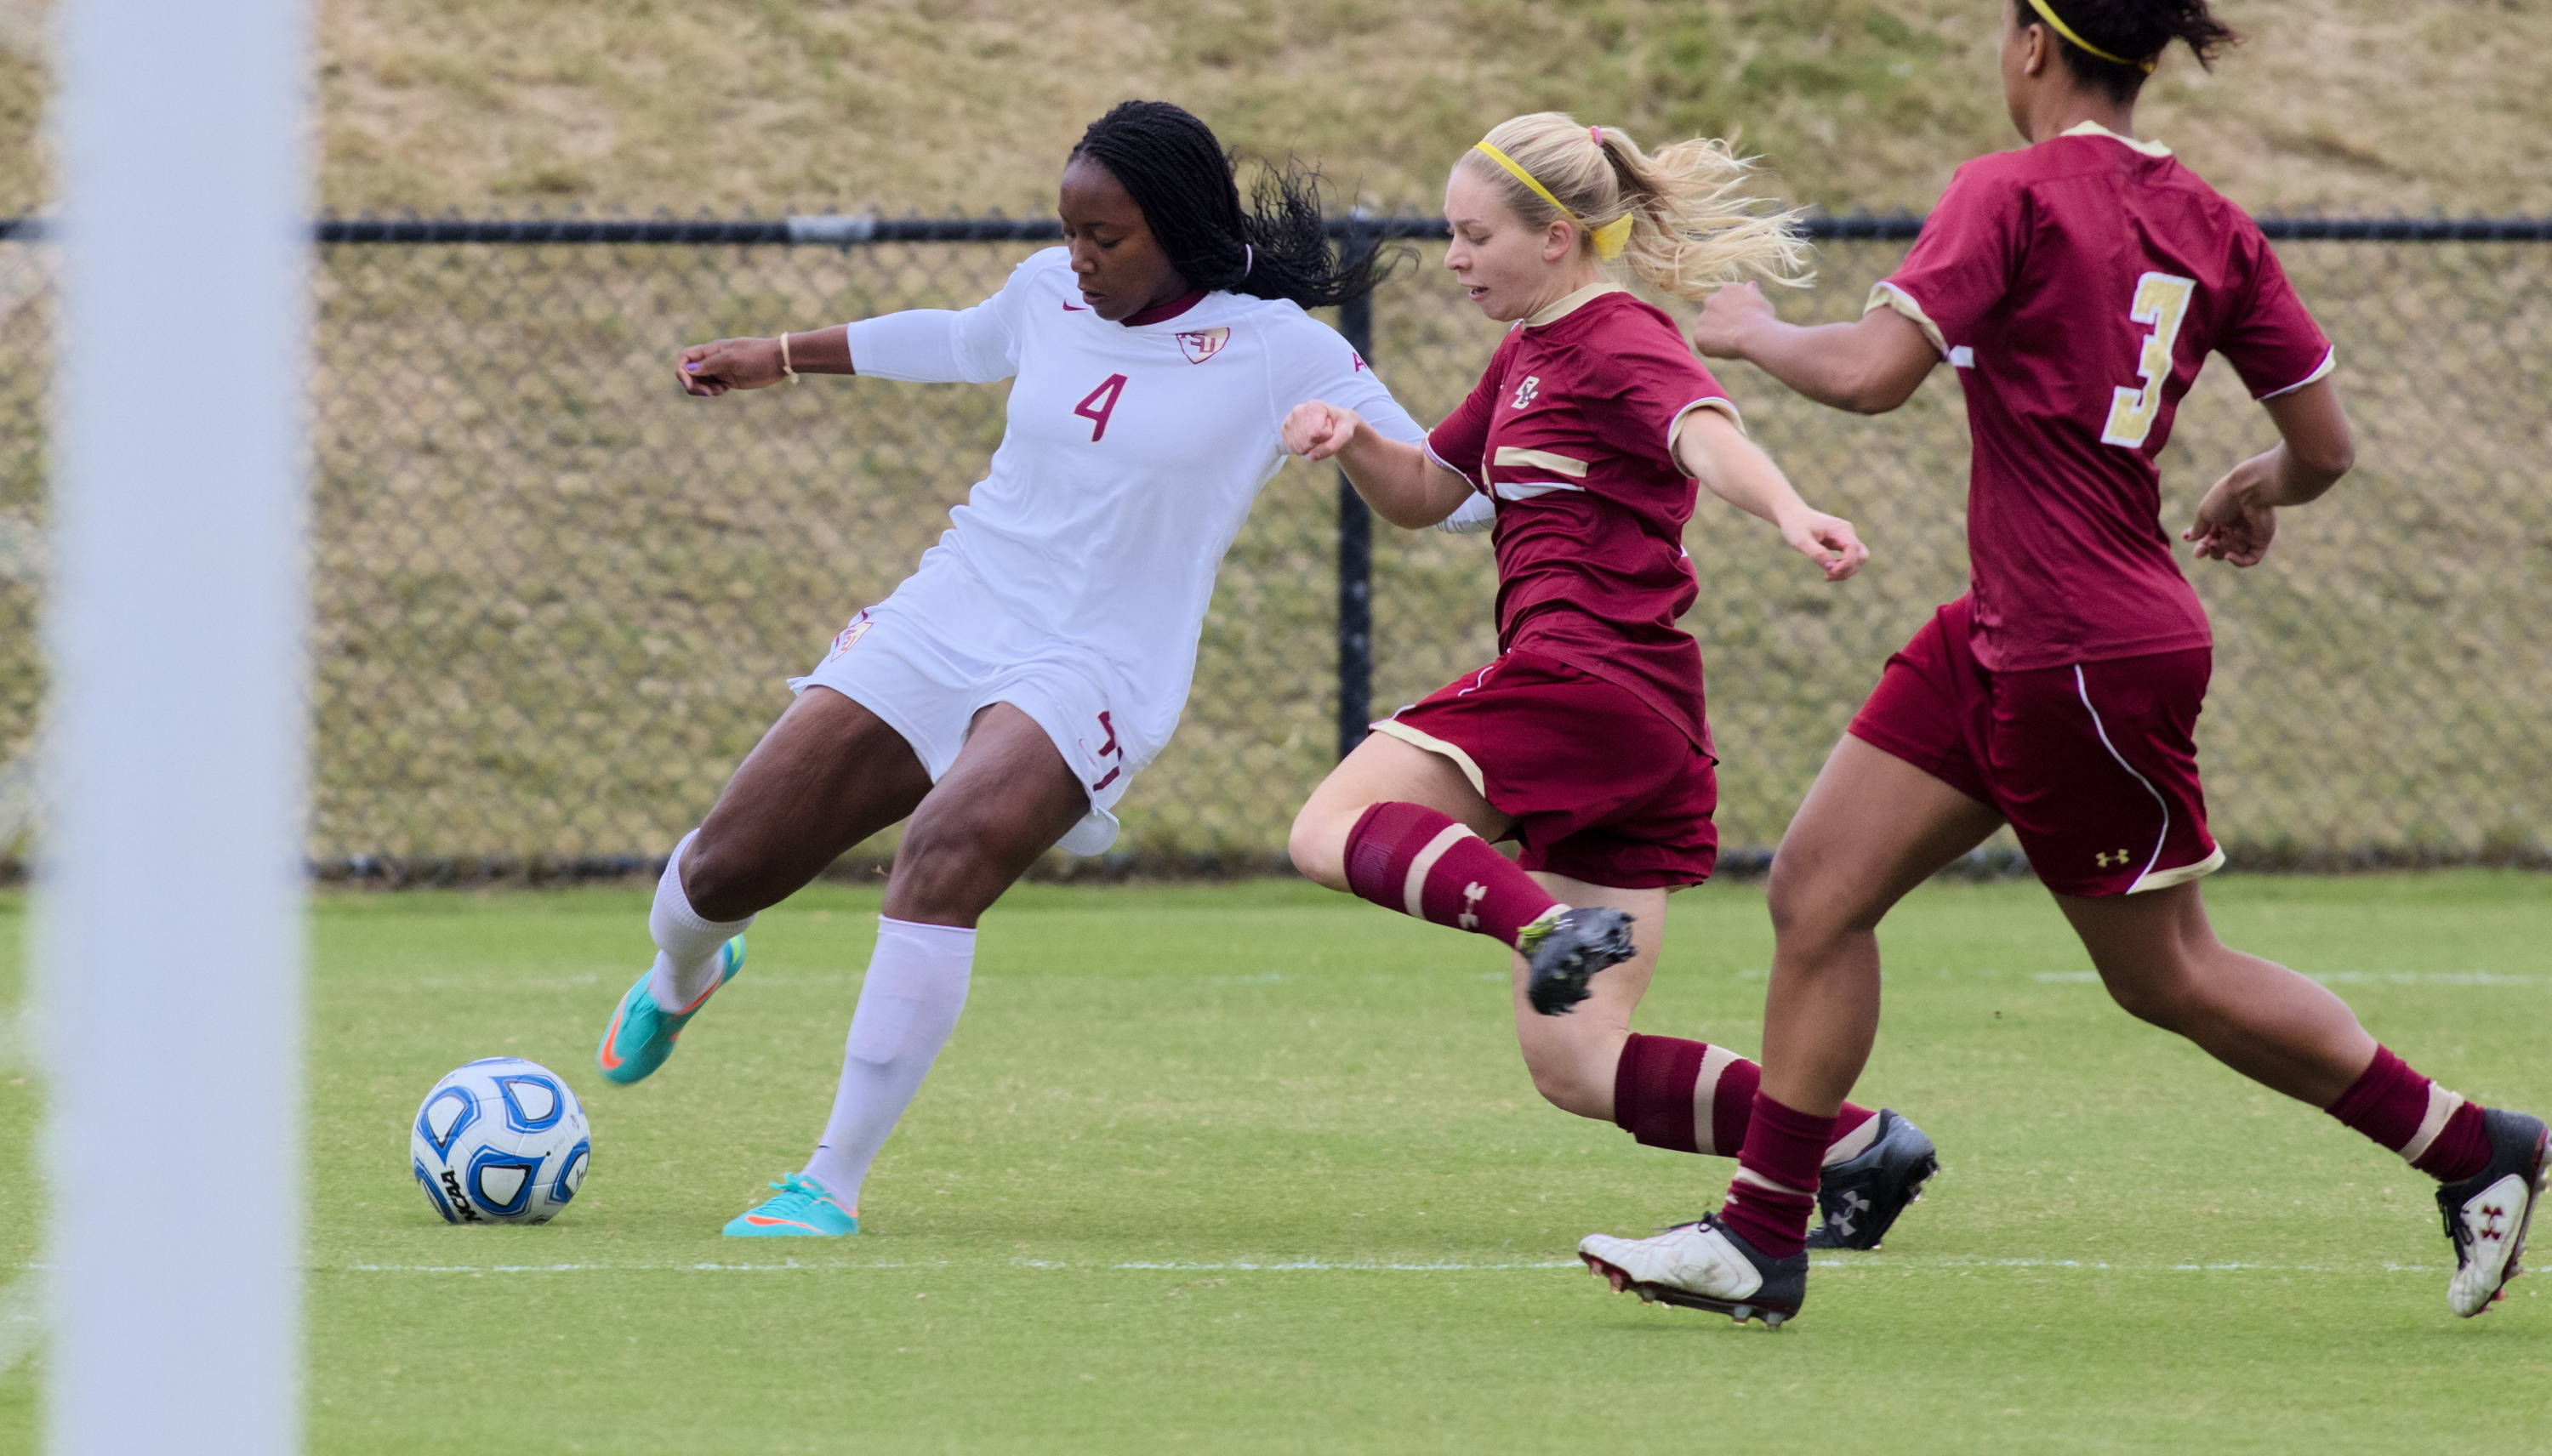 Jamia Fields (4), FSU vs BC, ACC Tournament, 10/28/12. (Photo by Steve Musco)